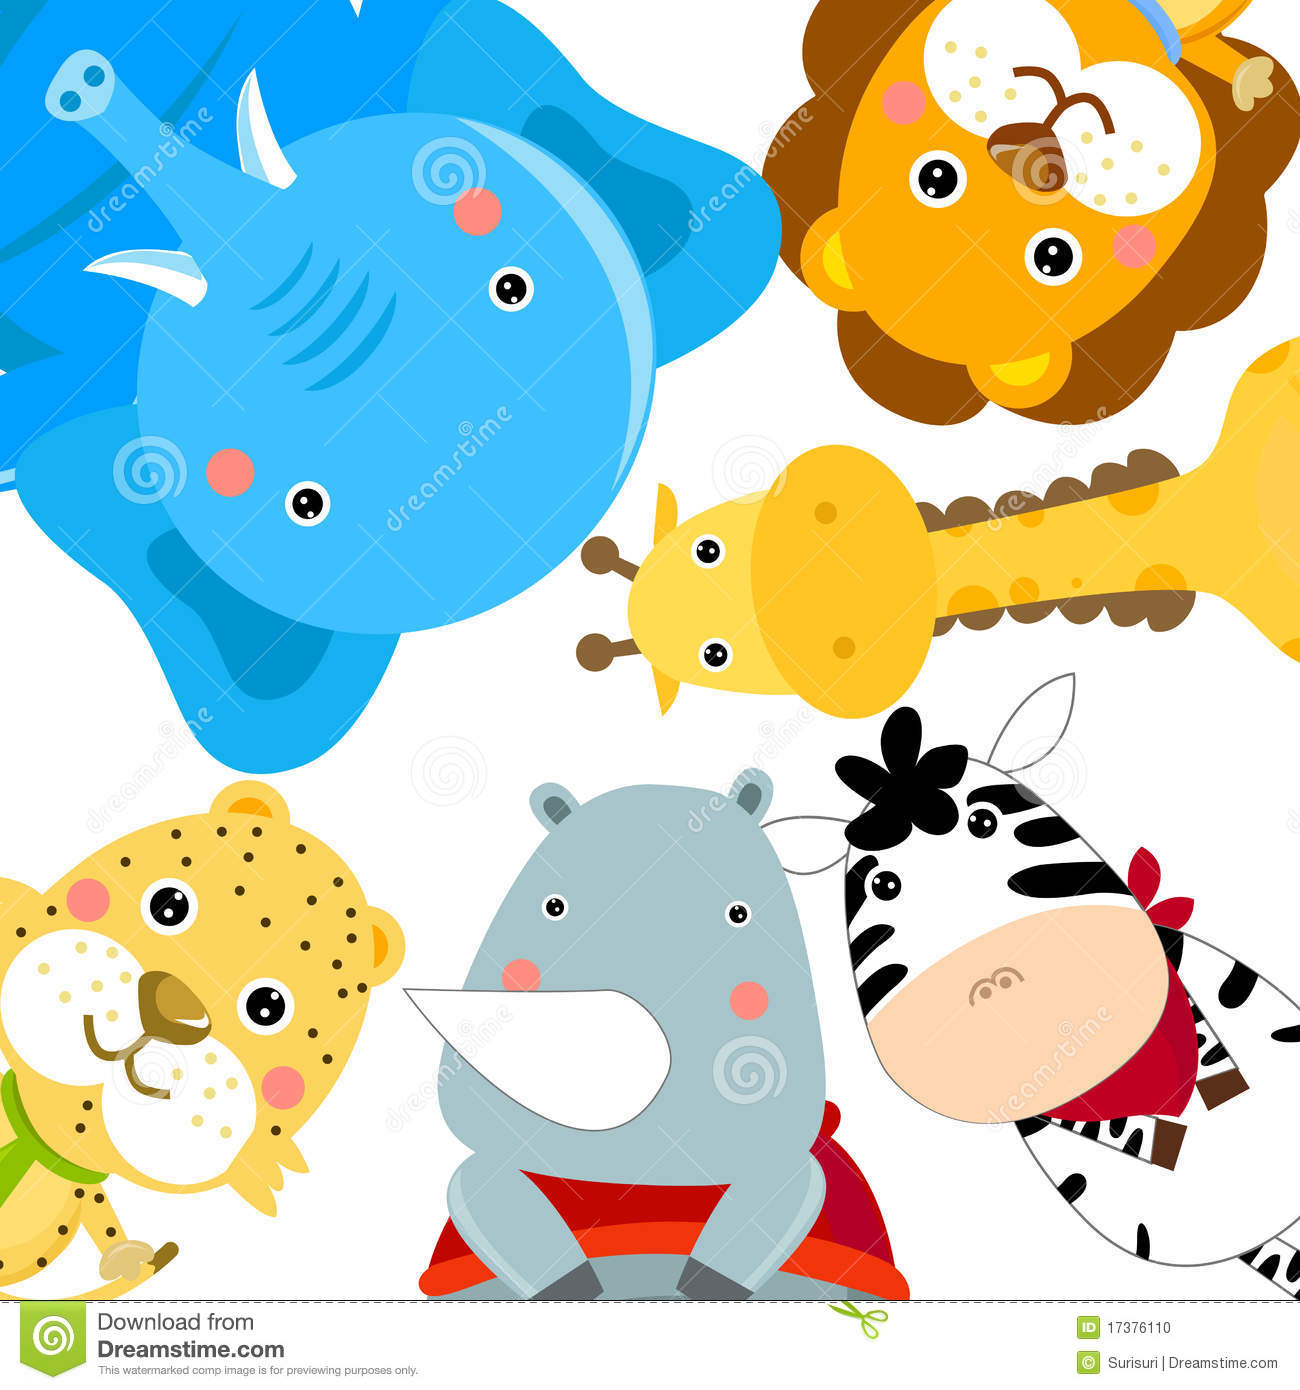 Clipart animal groups.